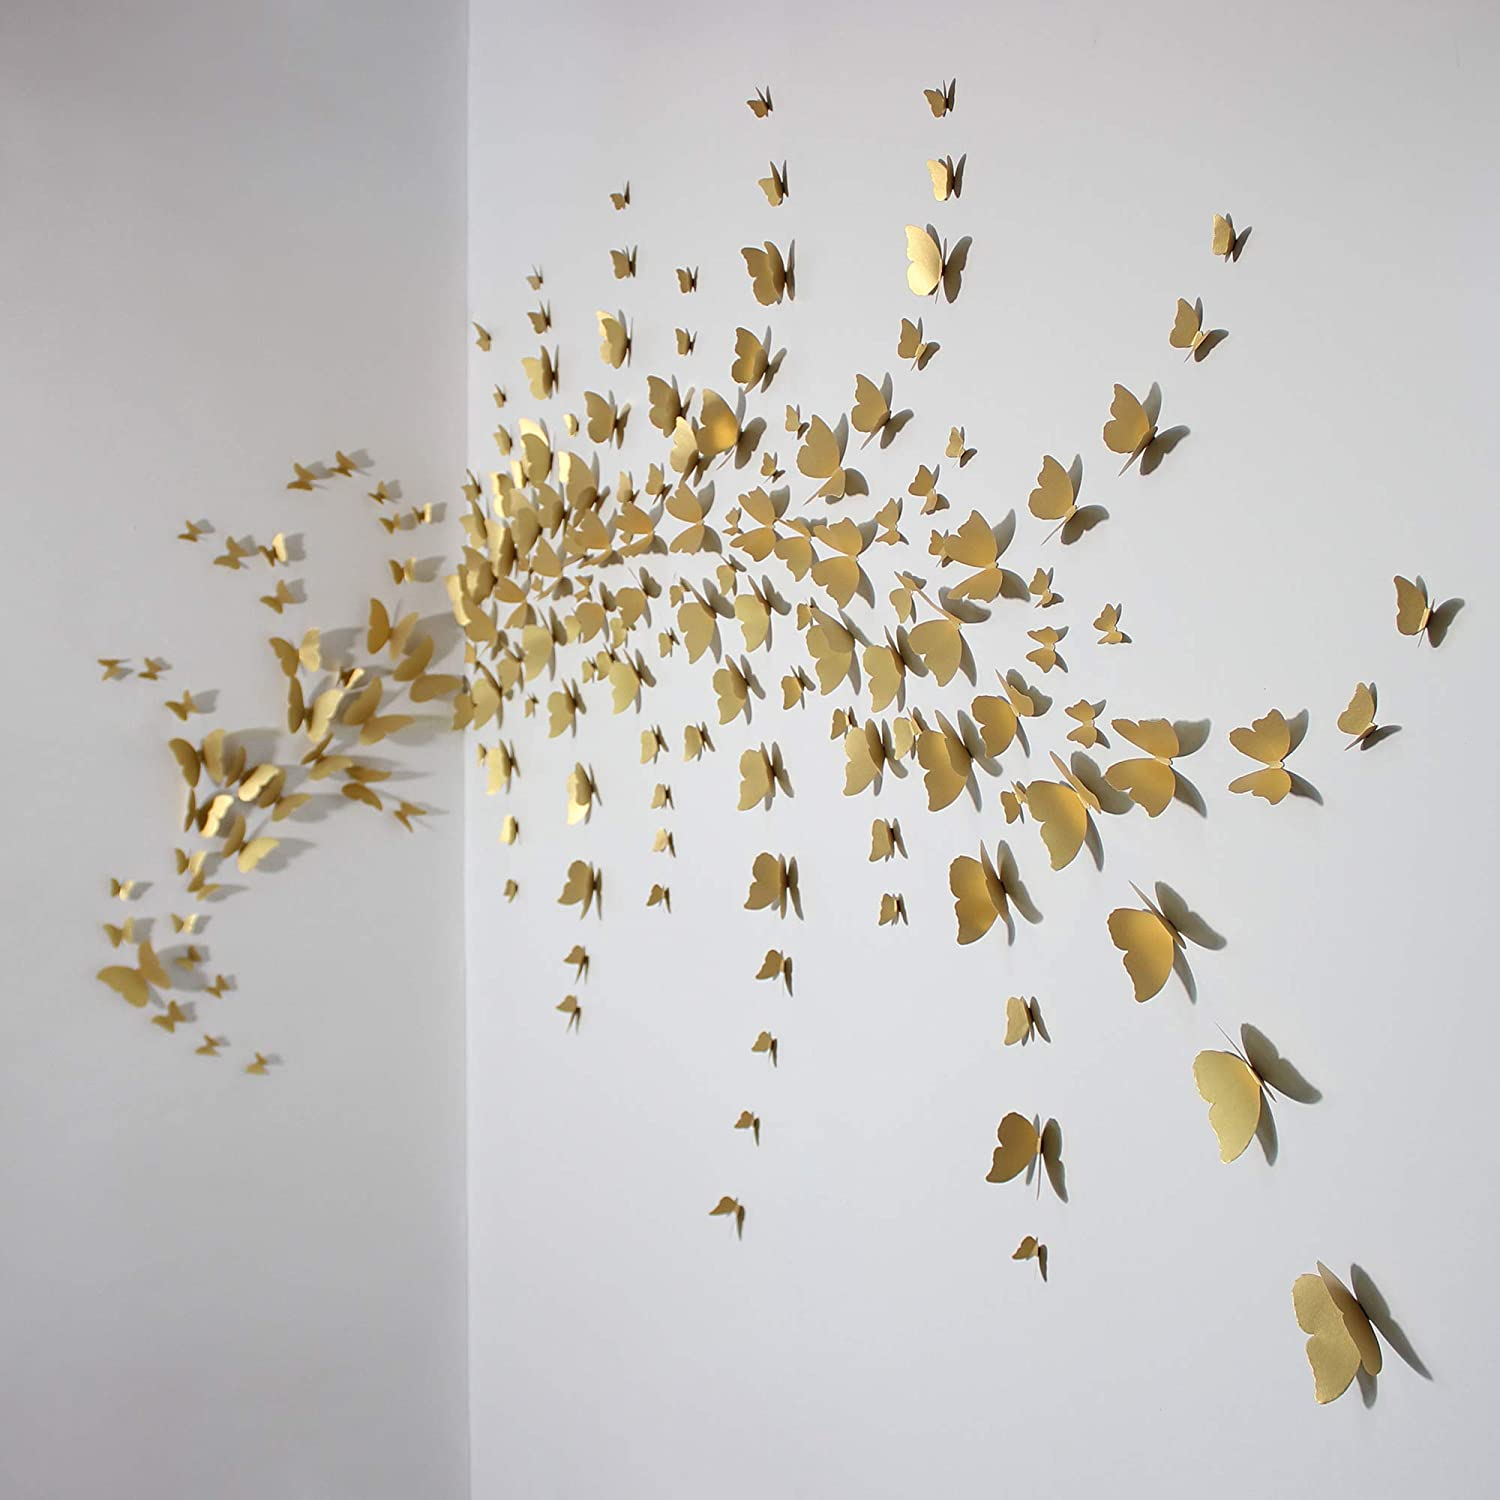 Made of Italian Paper - 3D Butterfly Wall Decor Stickers for Living Room, Office, Bedroom - Removable Art Decoration Sticker Set of 4 Sizes Butterflies - 192 Hanging Butterfly Decorations (Gold)